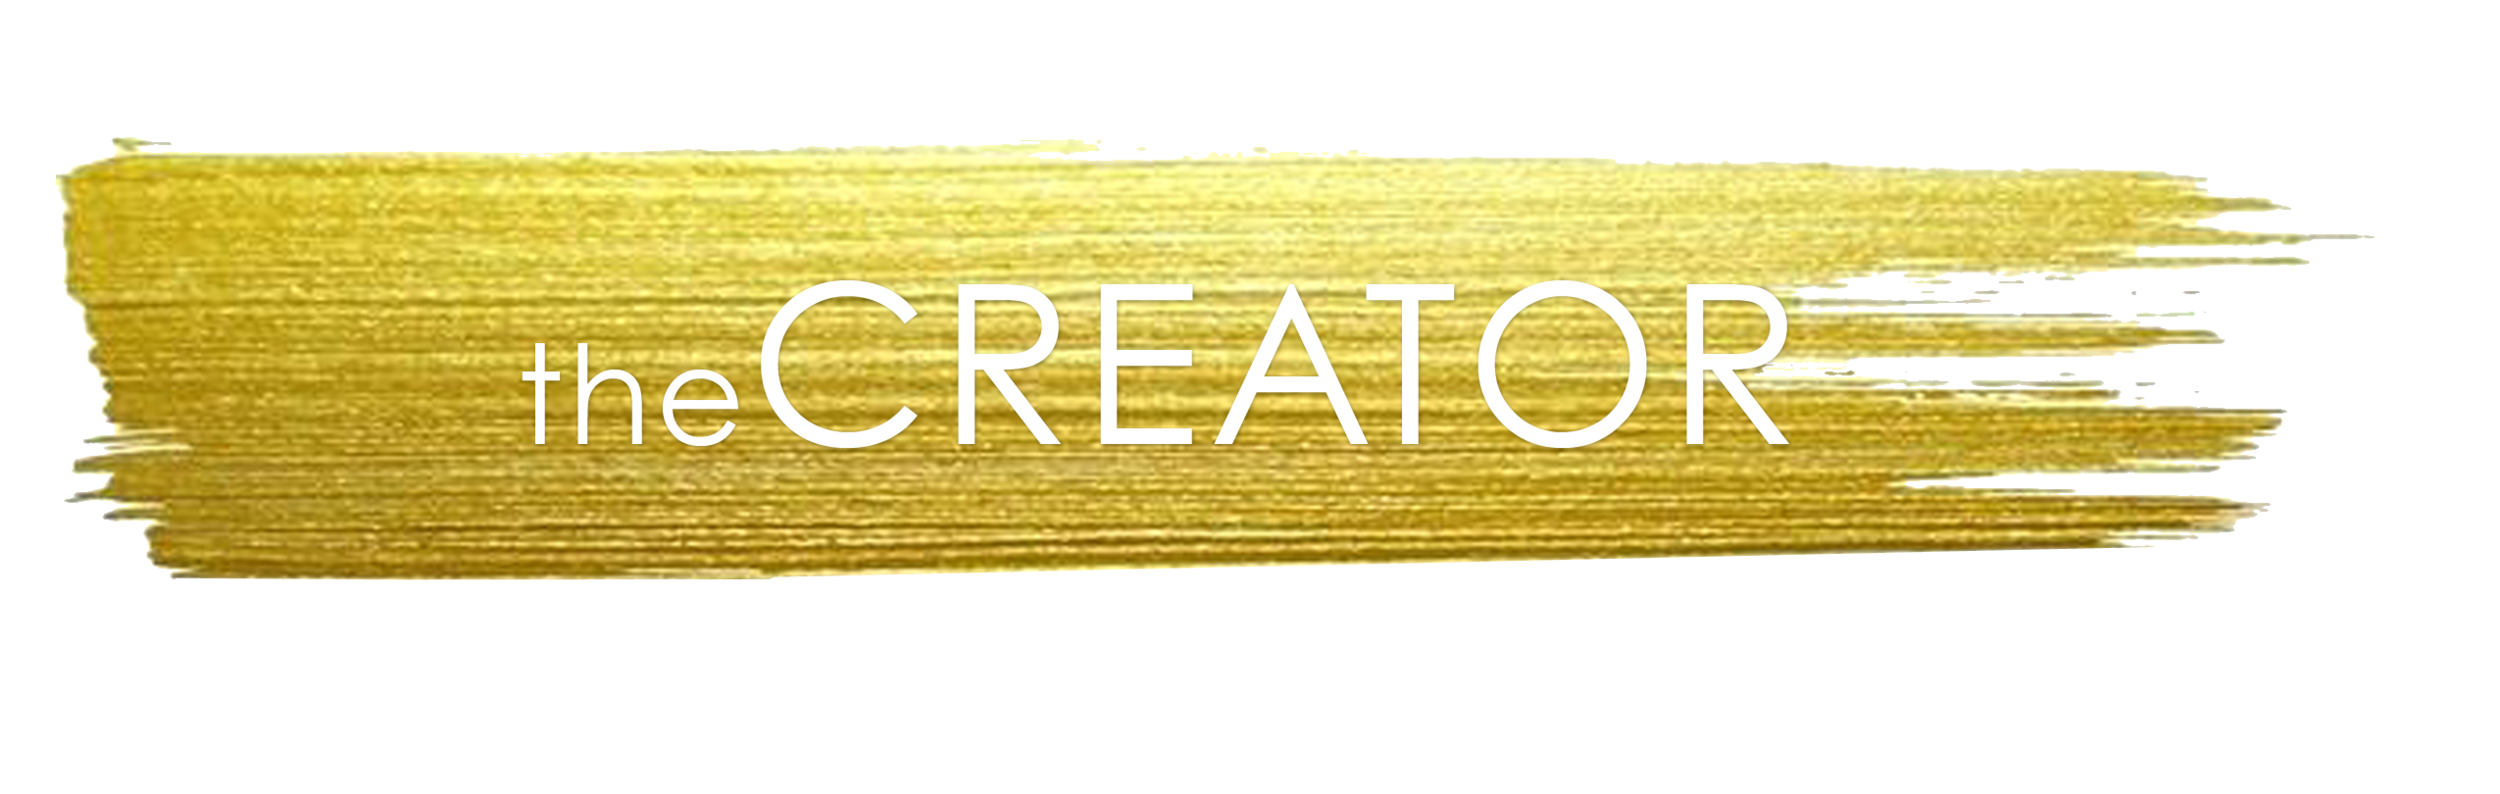 the creator 2.png